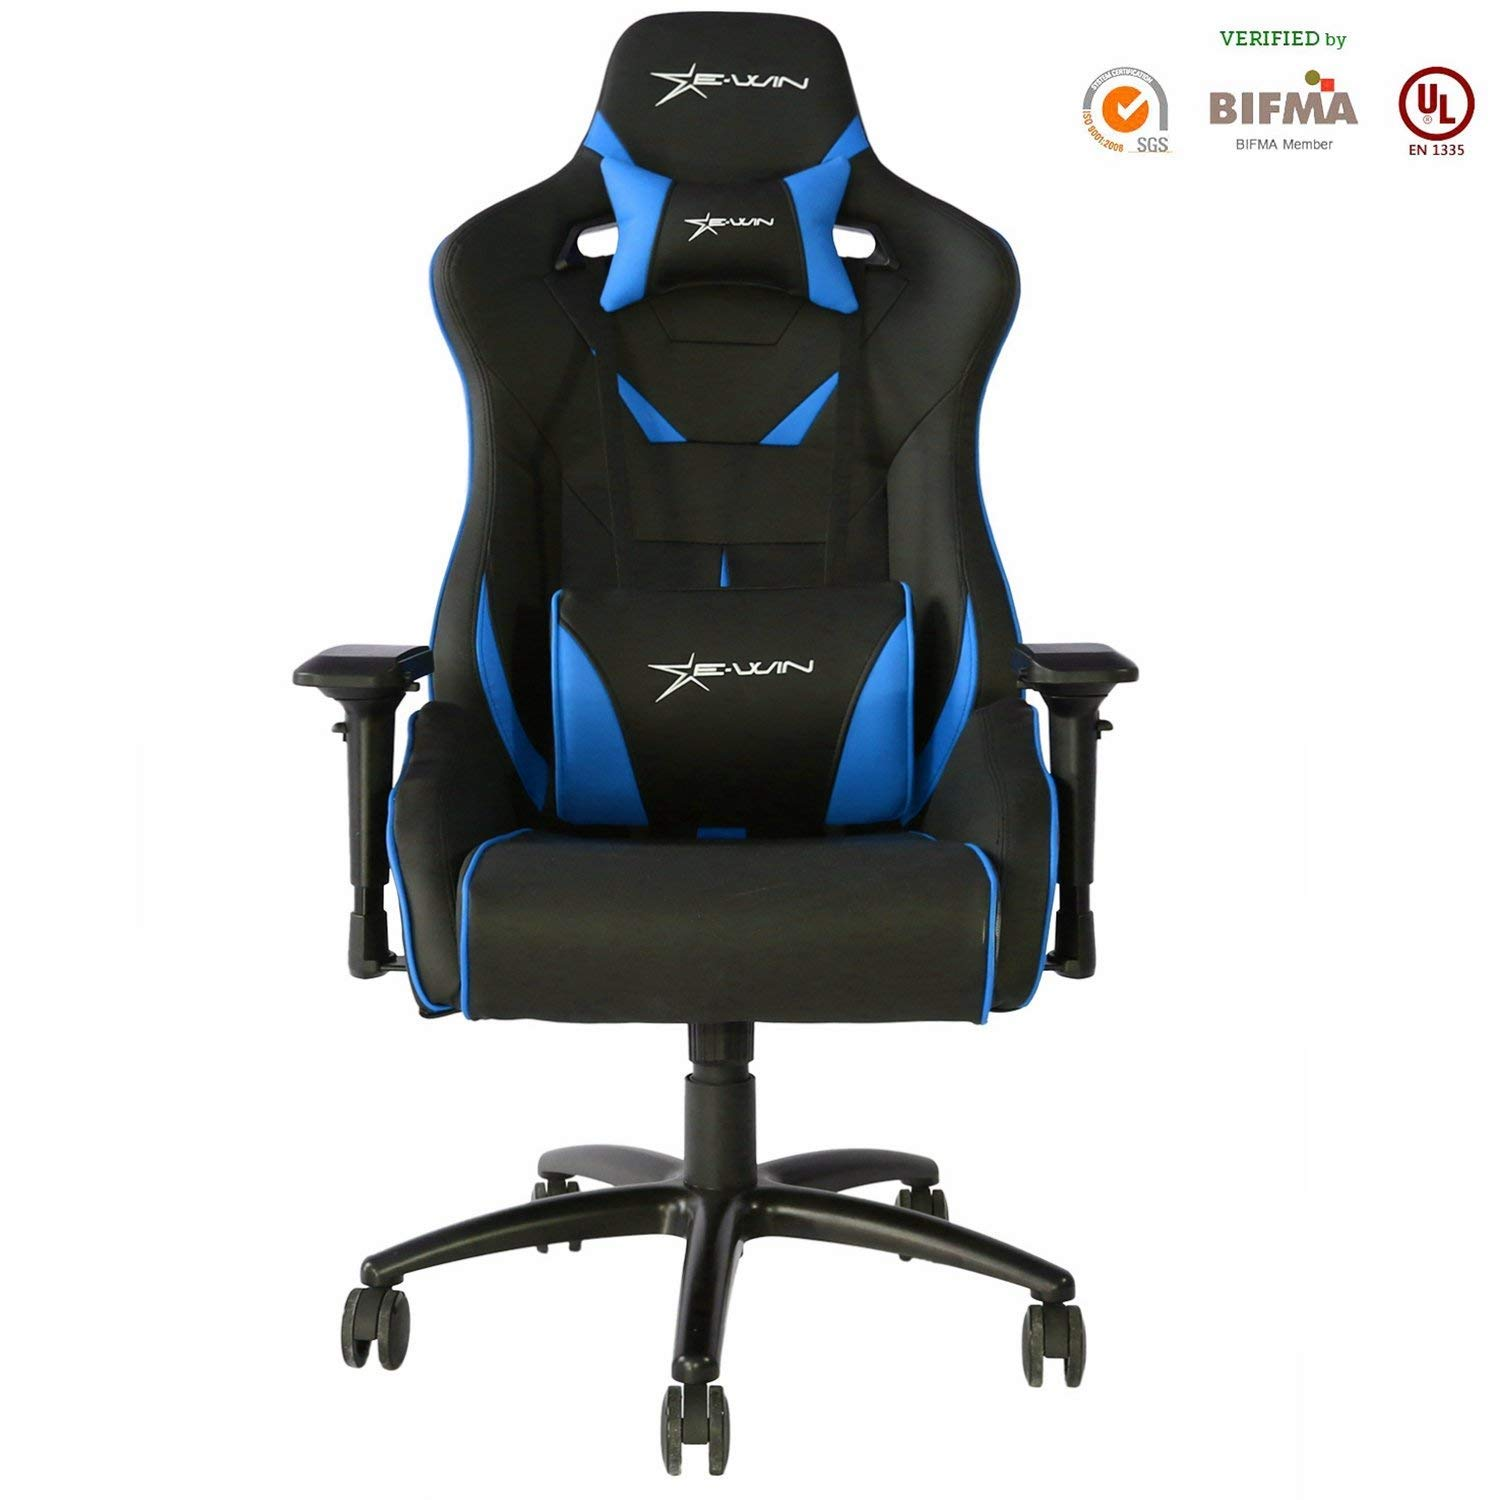 E-WIN Gaming Chair Ergonomic High Back PU Leather Racing Style with Adjustable Armrest and Back Recliner Swivel Rocker Office Chair (XL Blue) by E-WIN